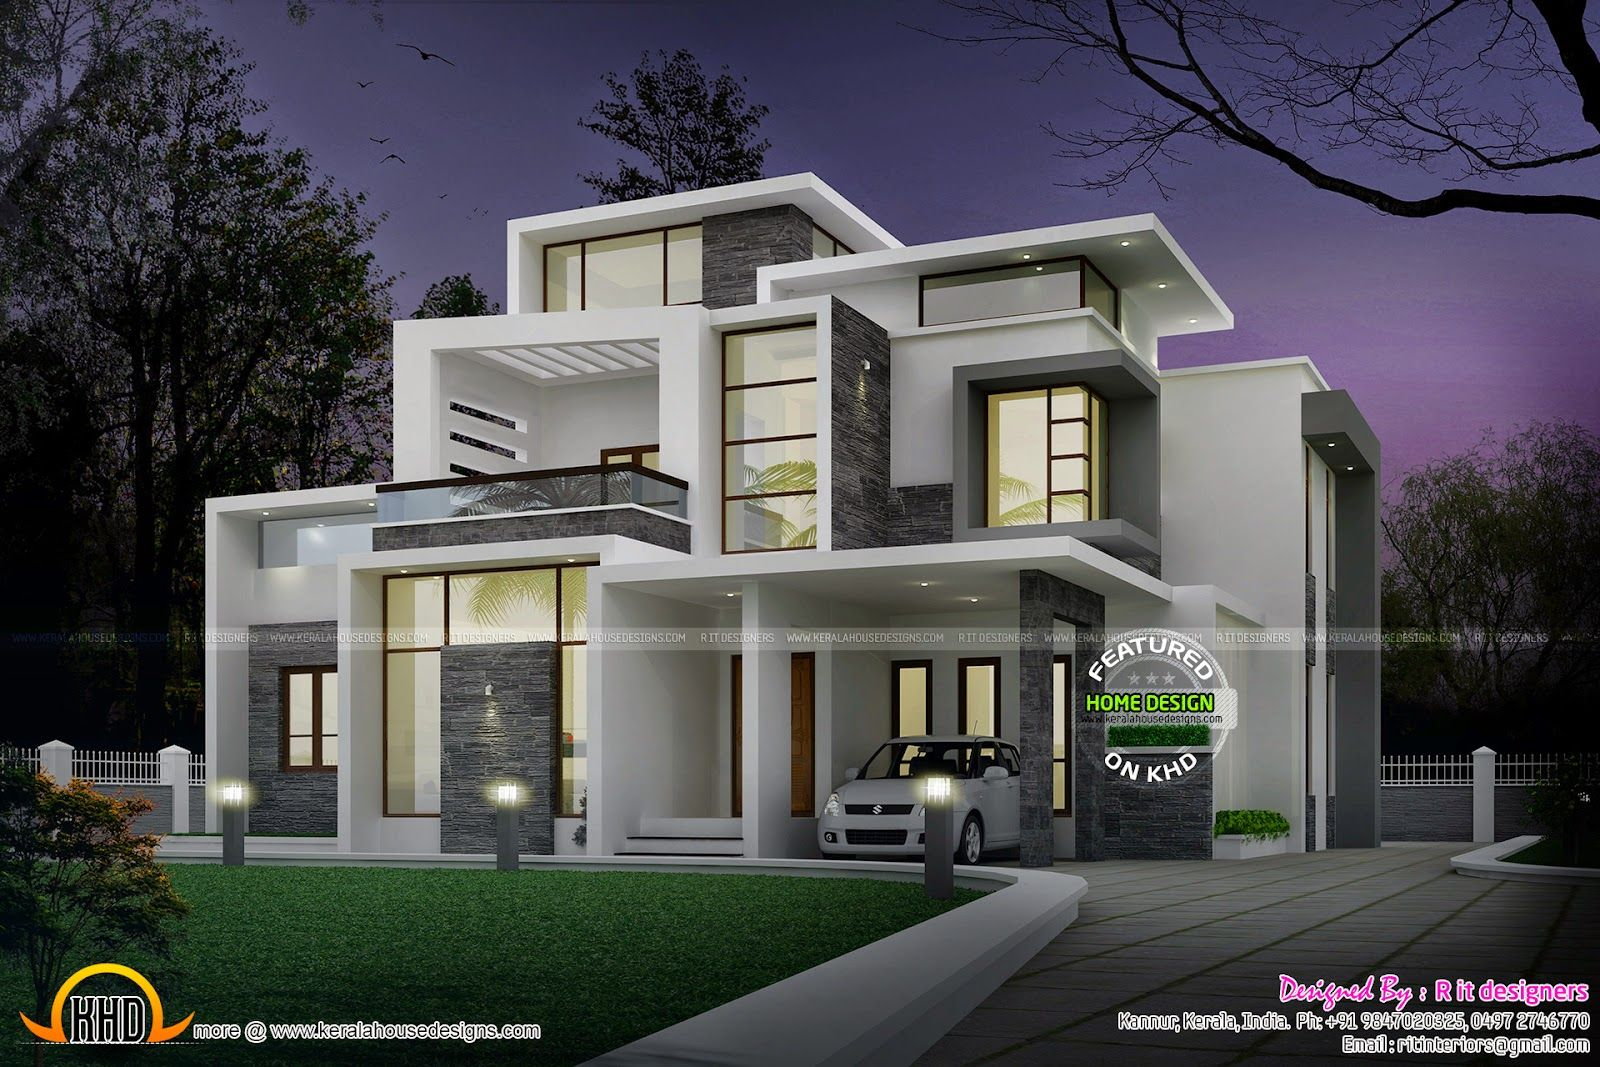 Grand contemporary home design kerala home design and for Kerala modern house designs